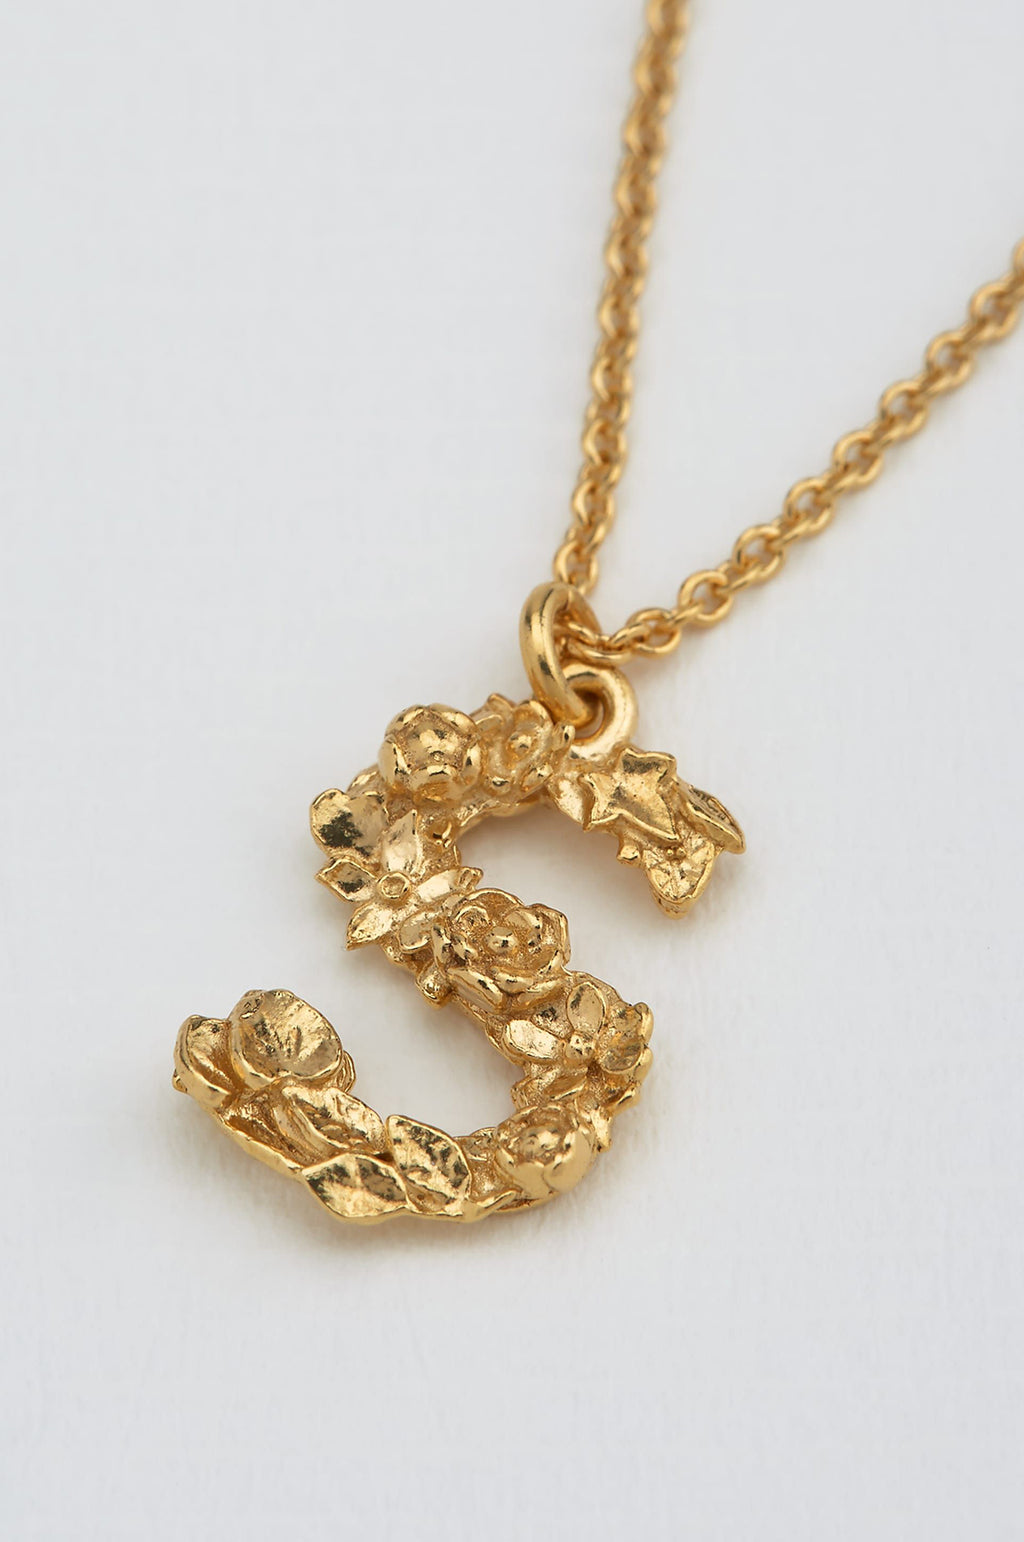 Floral Letter S Necklace Gold Plate